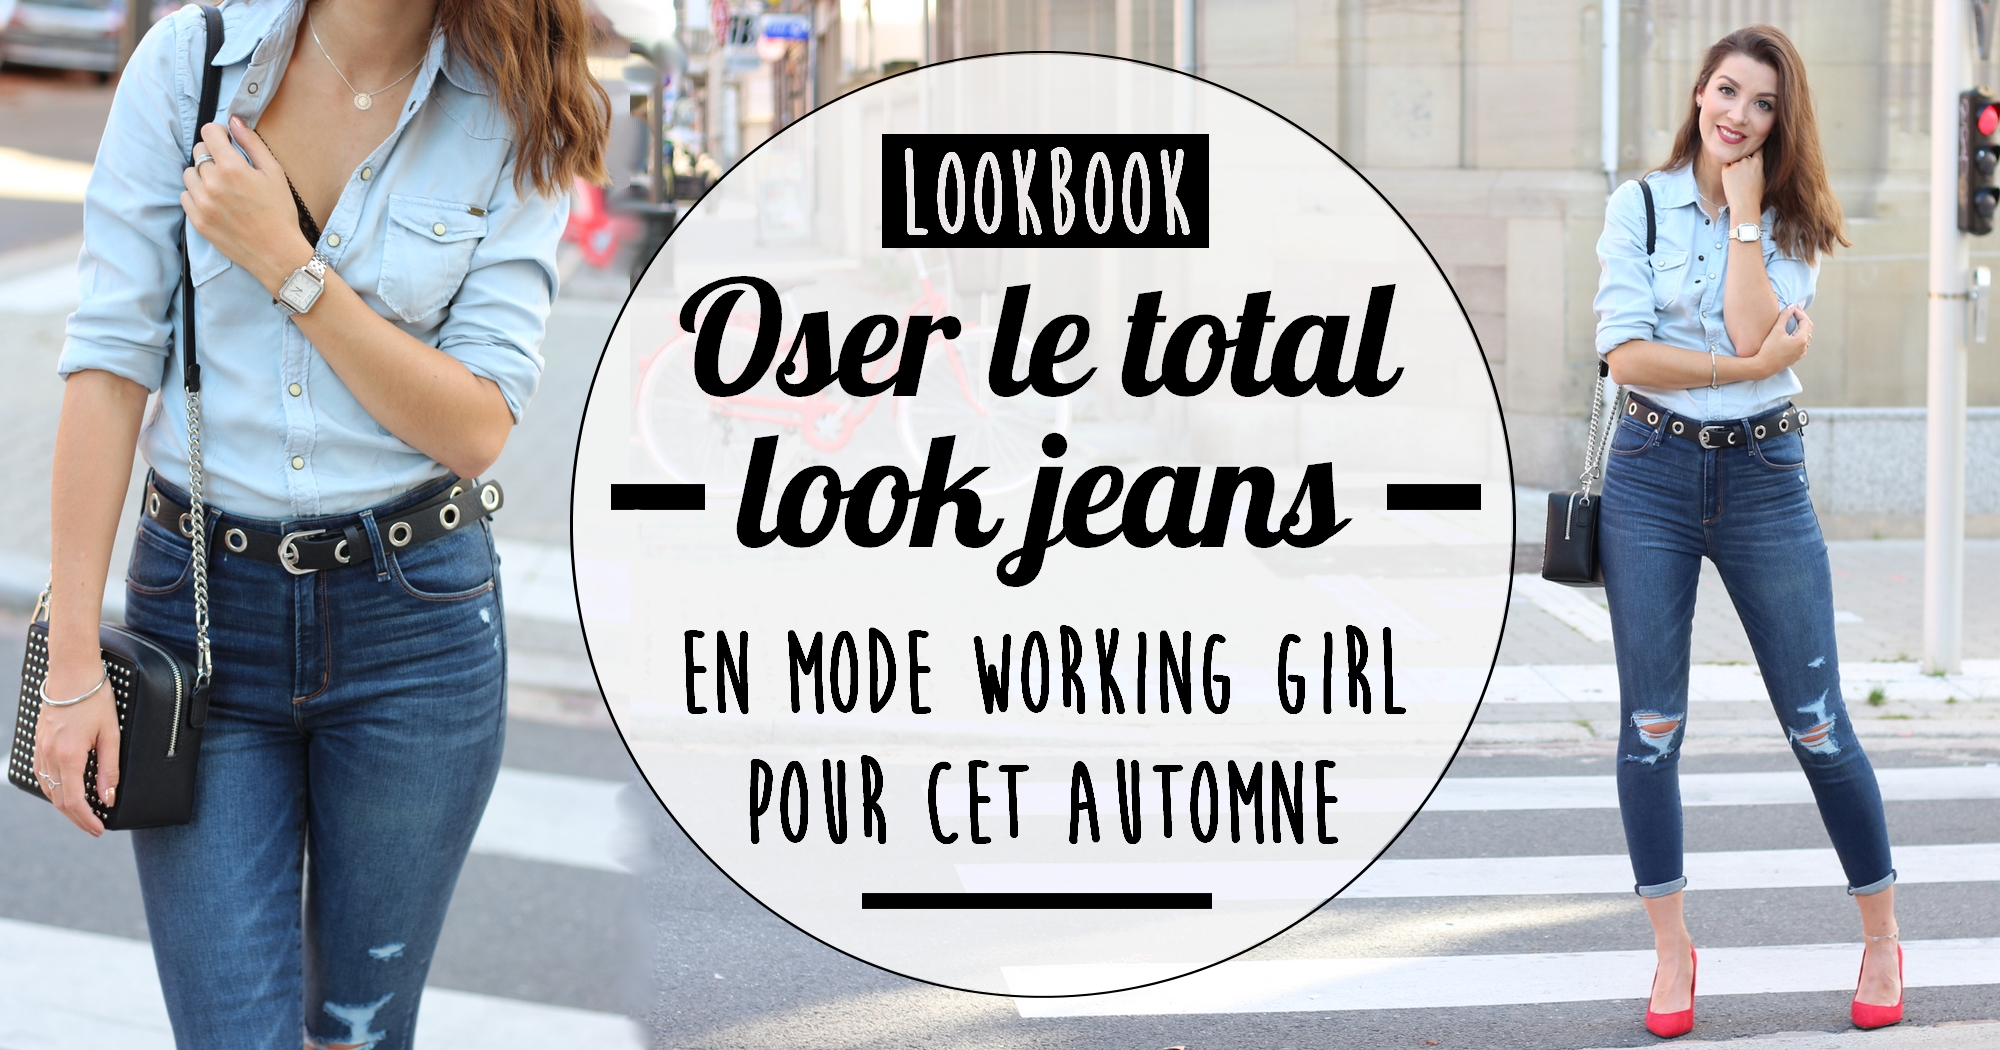 Look : Oser le total look jeans comme une vraie working girl